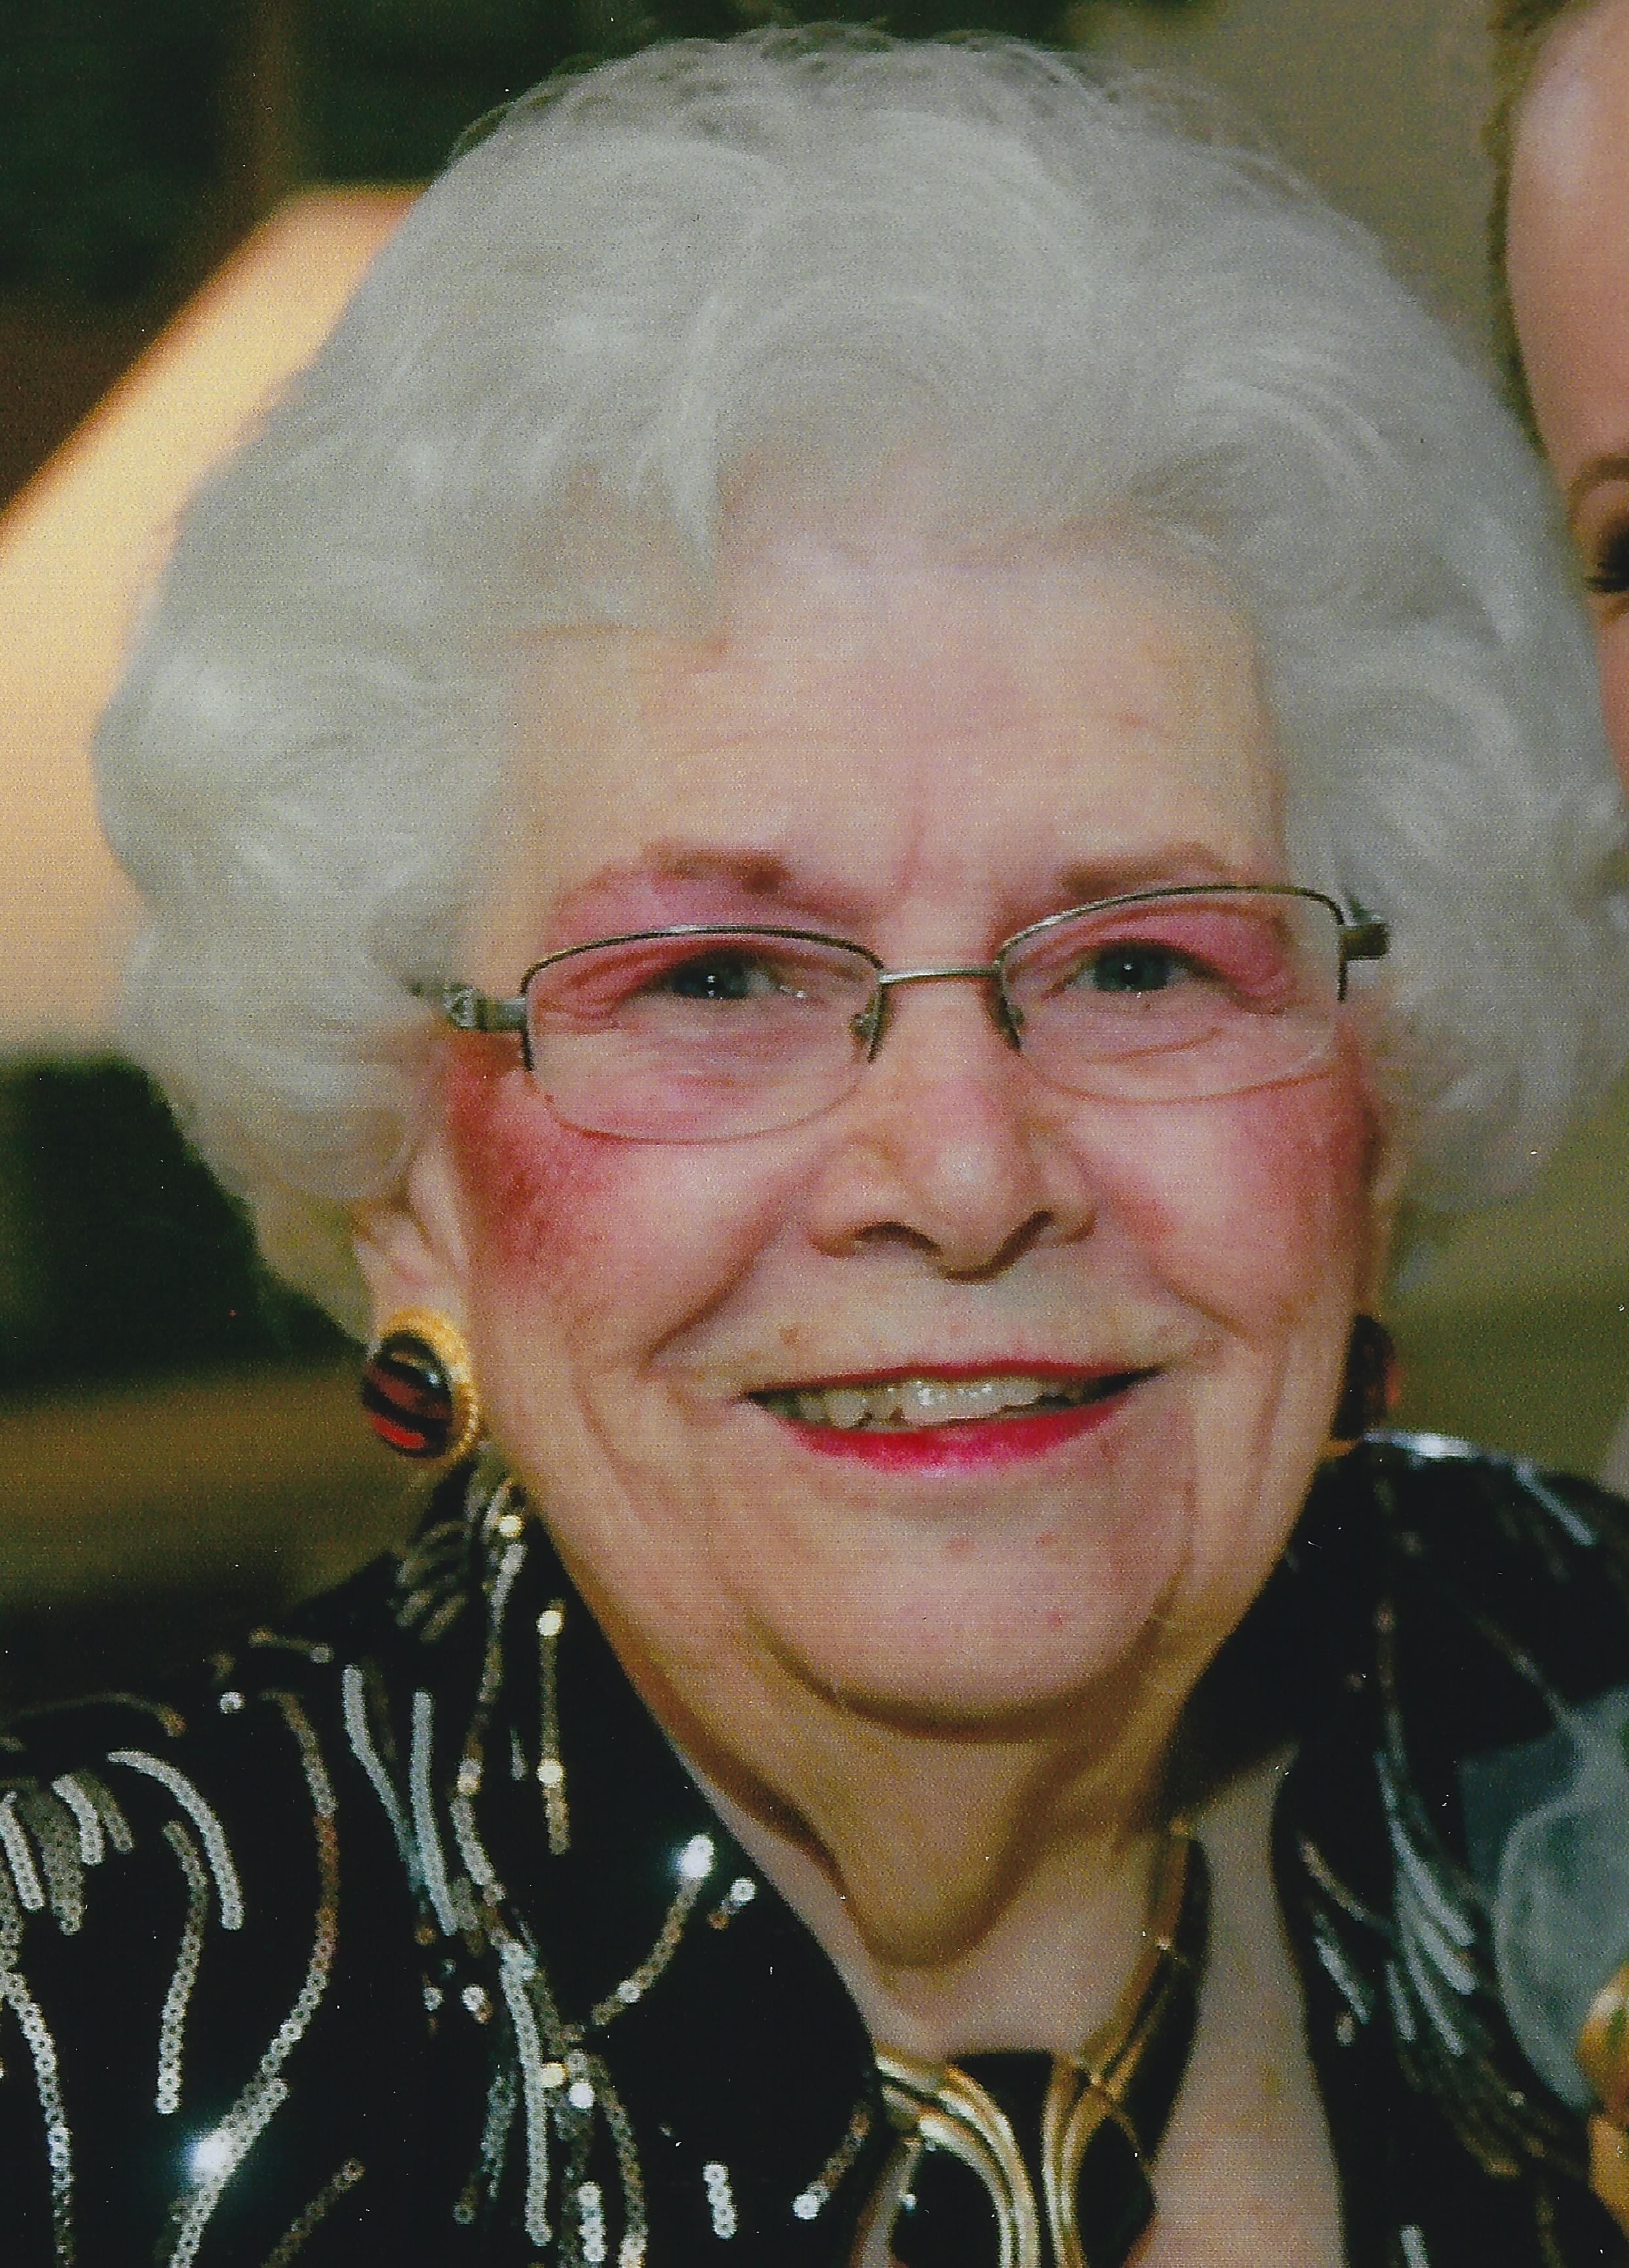 OBITUARY: Lucille L. Falley